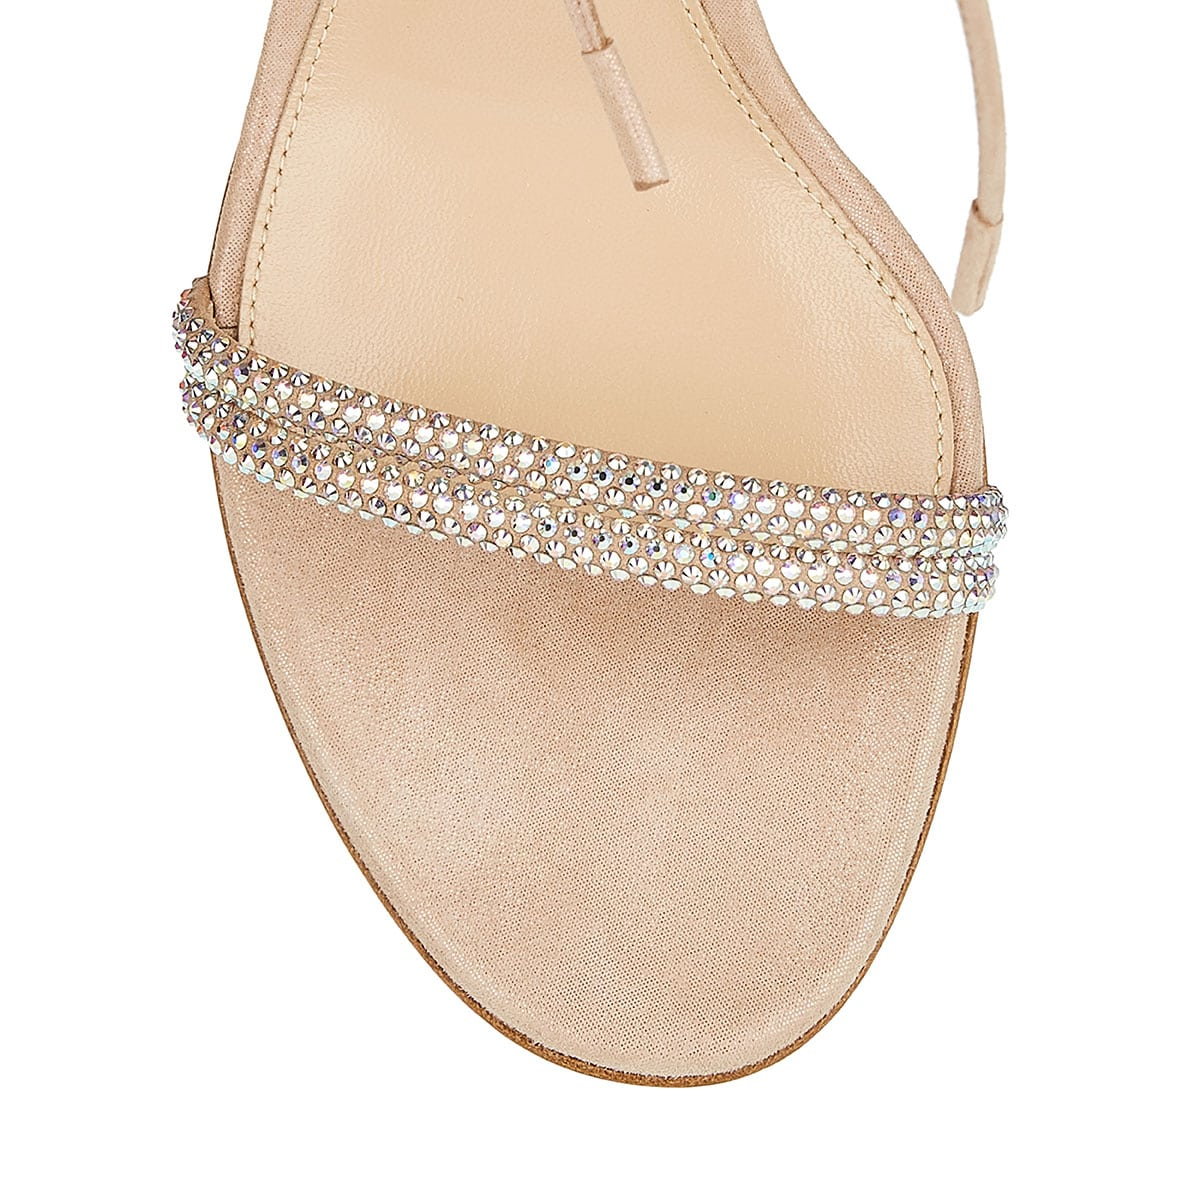 85 crystal-embellished suede sandals